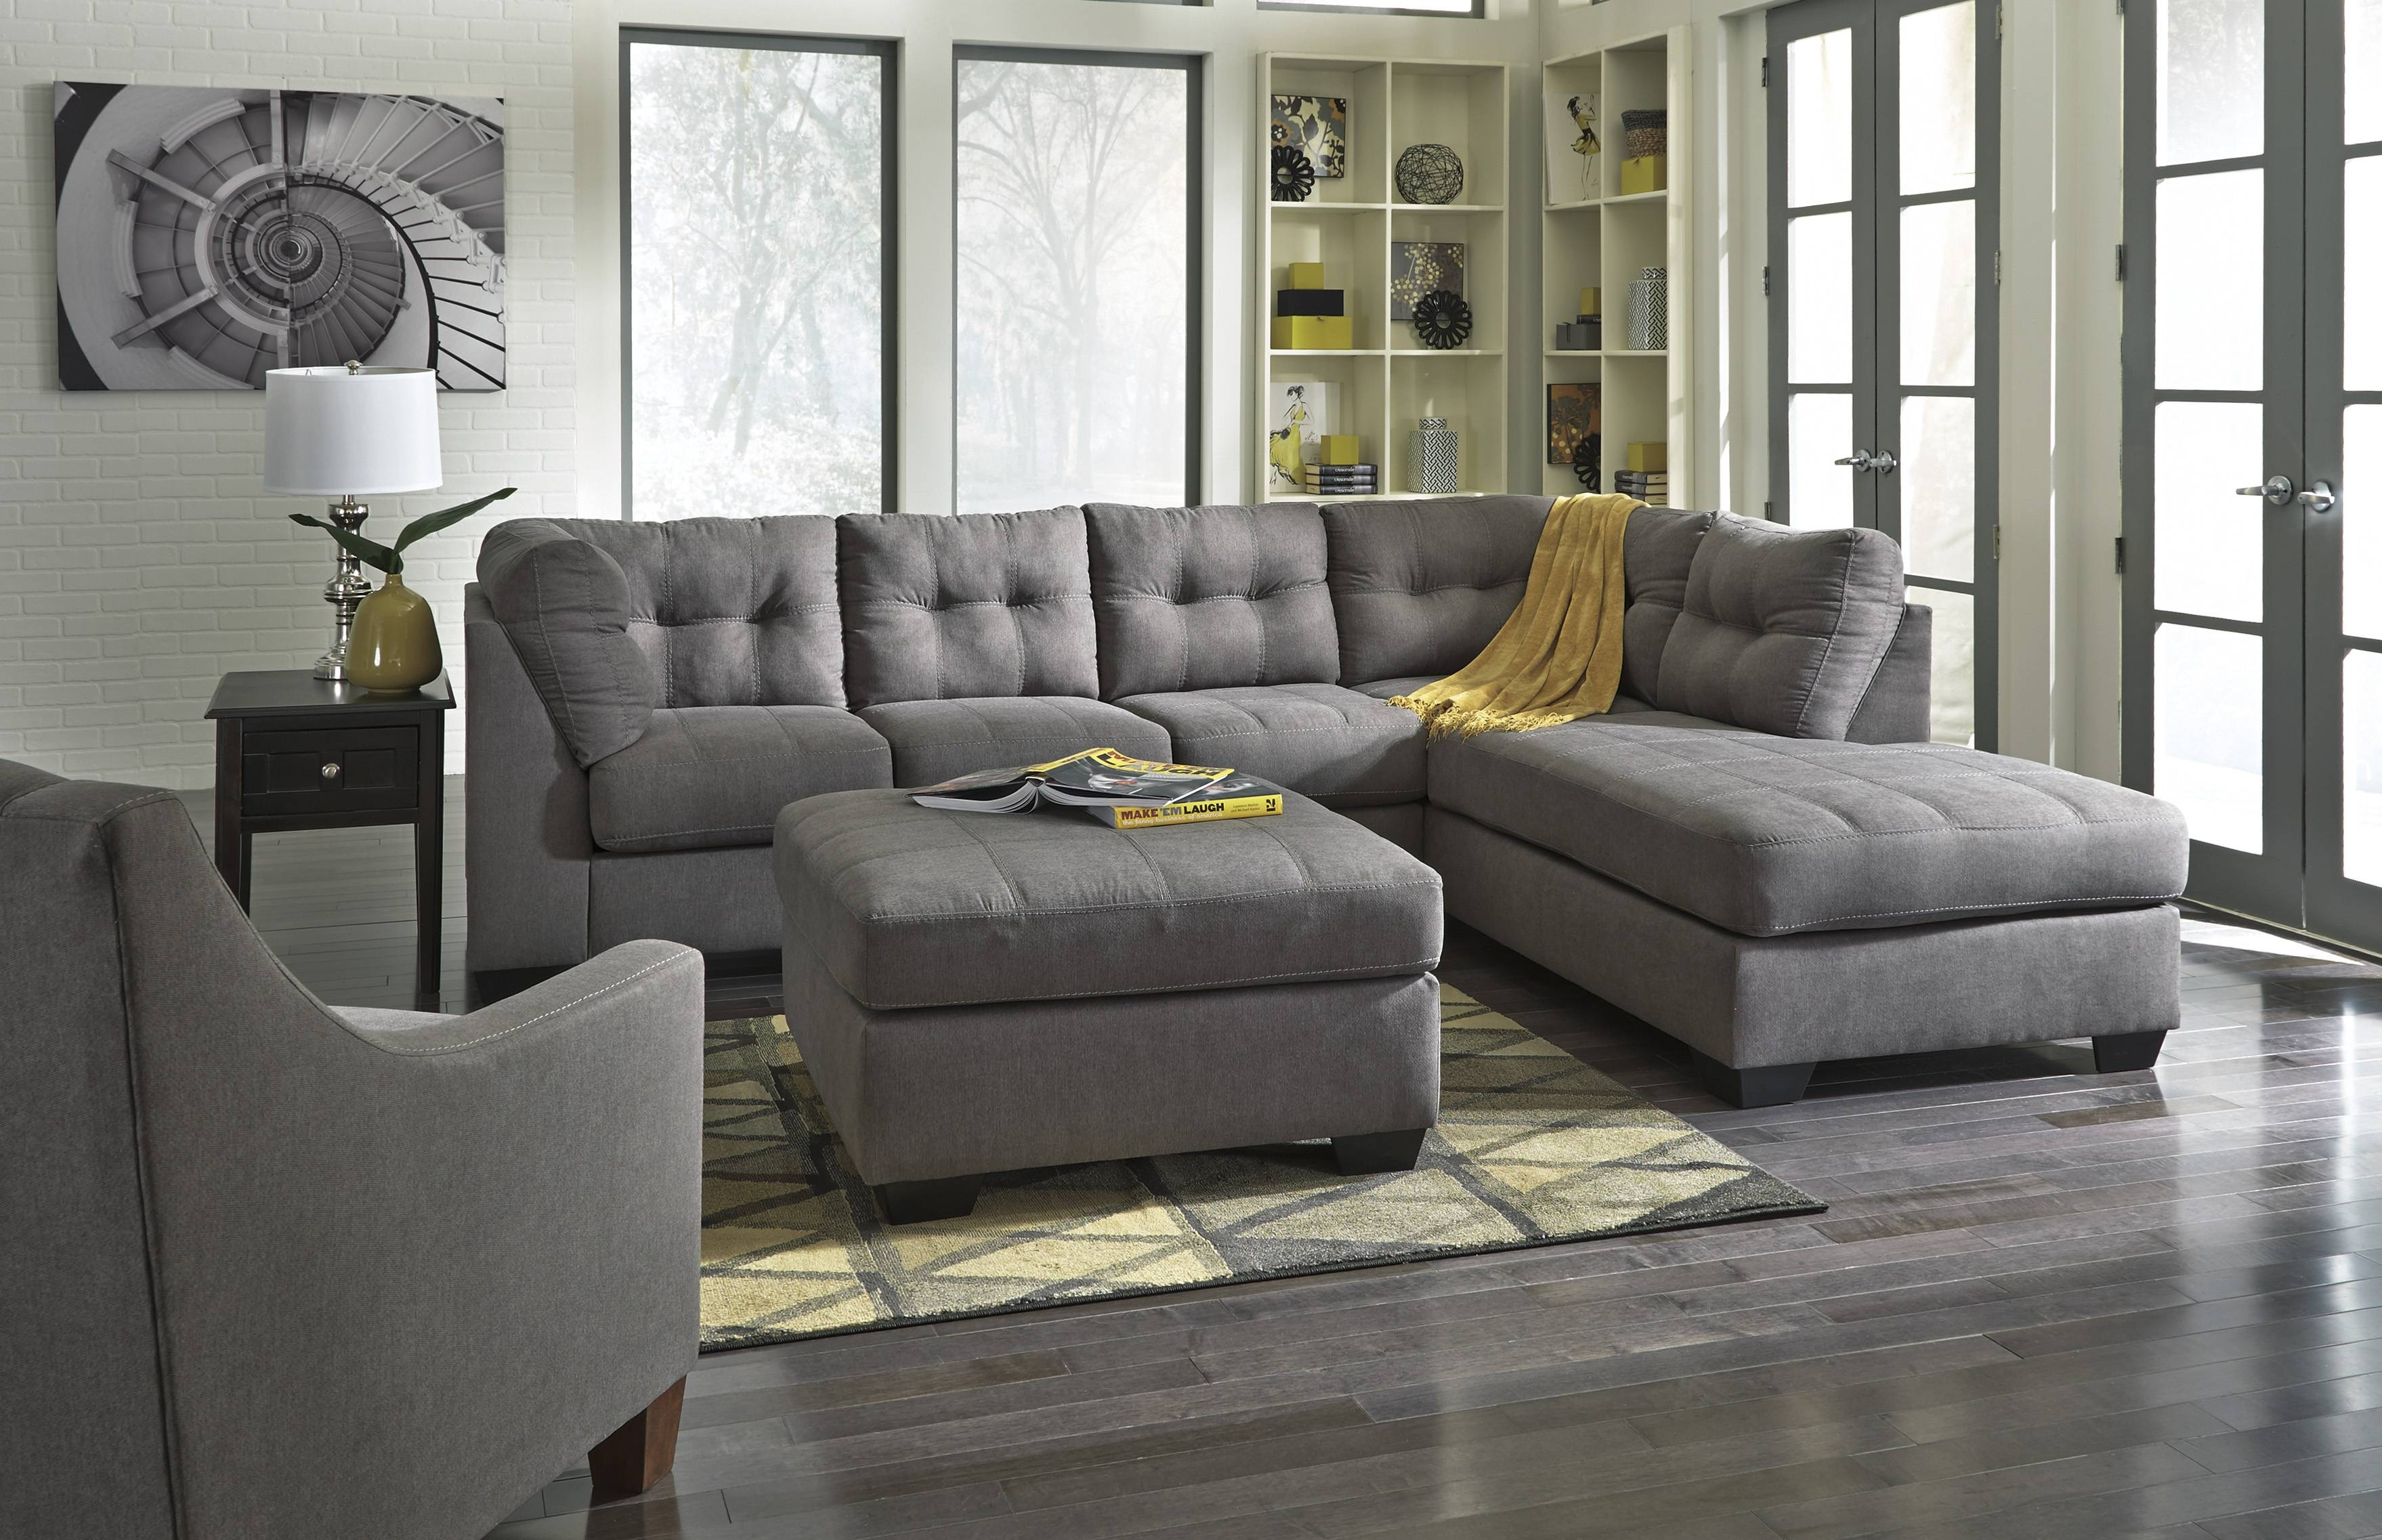 Chair & Sofa: Have An Interesting Living Room With Ashley Intended For Ashley Tufted Sofa (Image 15 of 30)